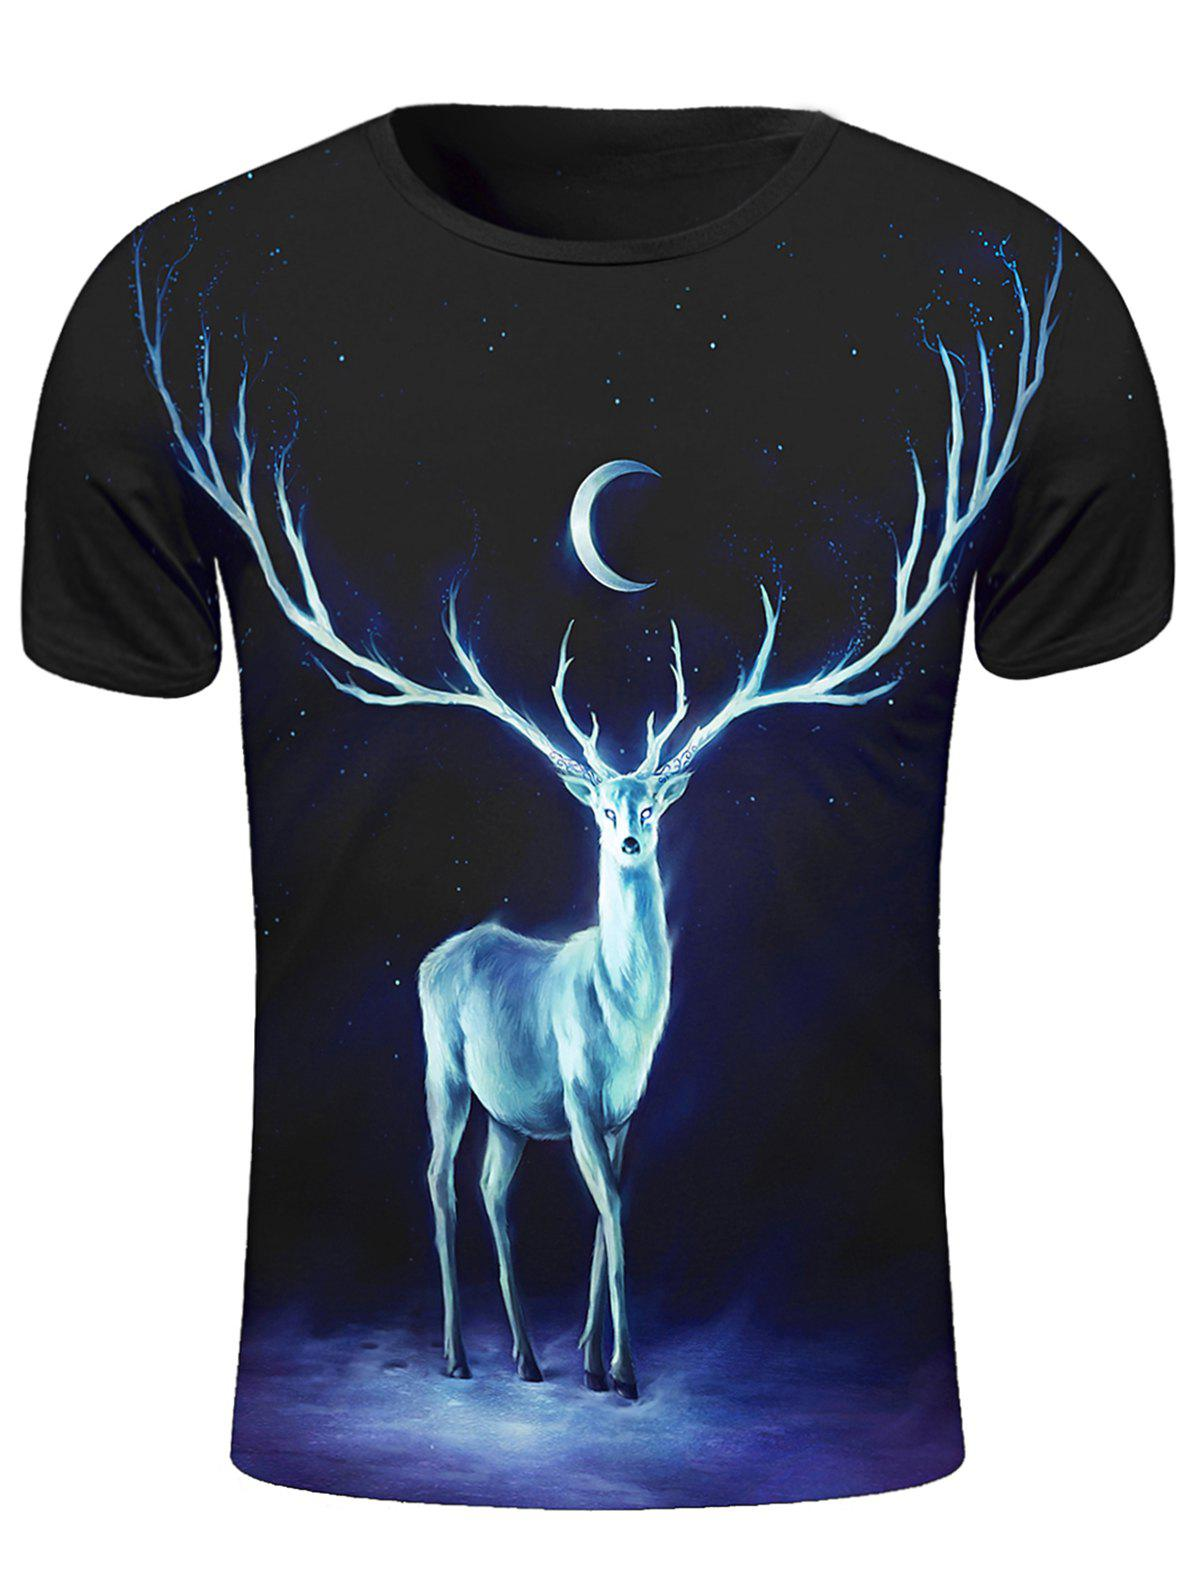 3D Starry Sky and Elk Print Round Neck Short Sleeve Stylish Men's T-Shirt - BLACK 2XL